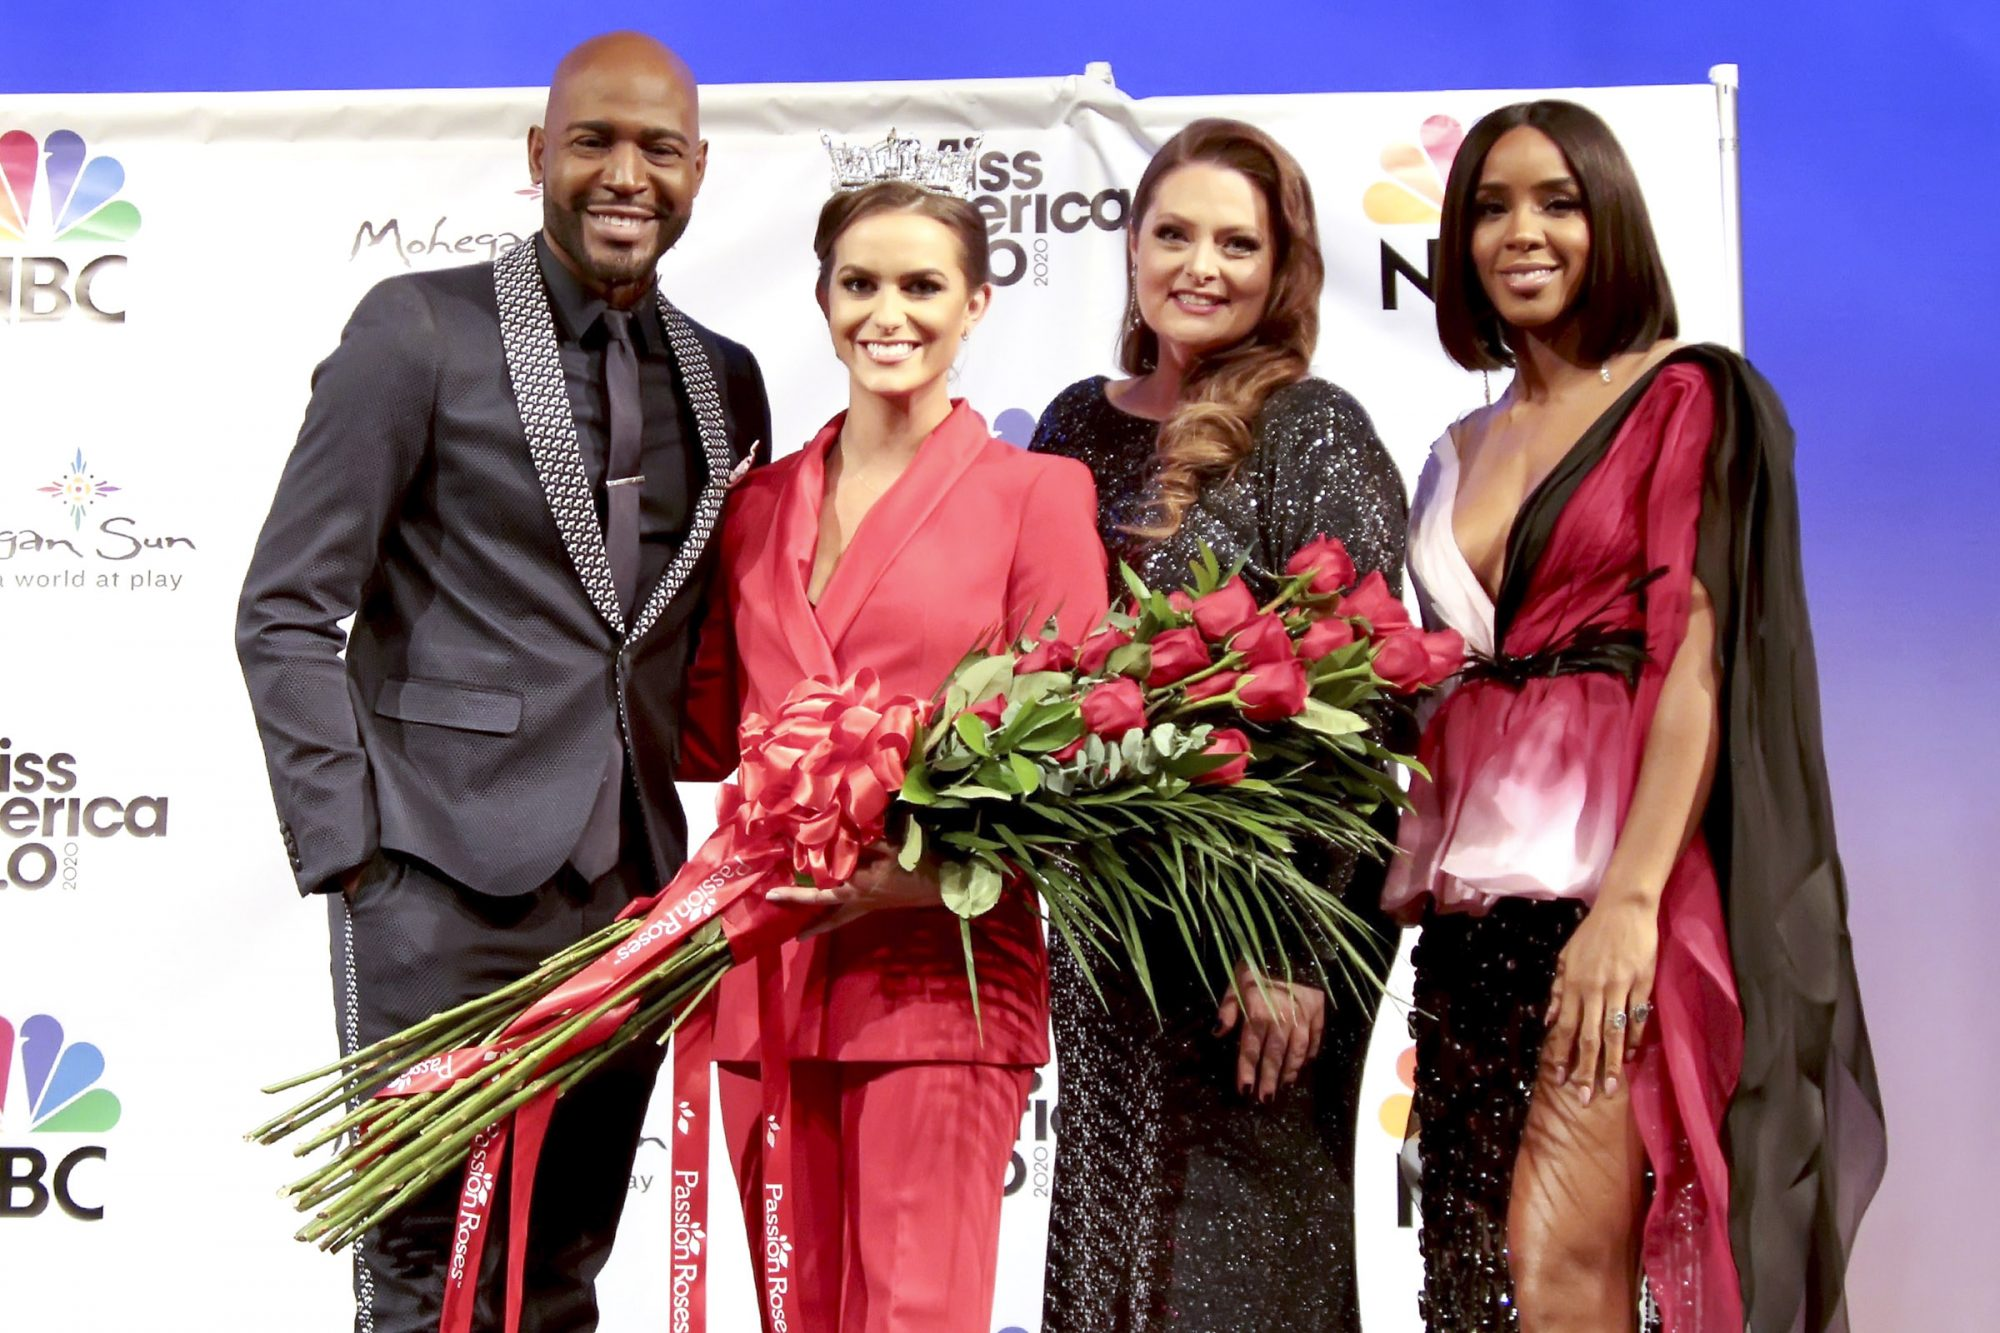 Karamo Brown, Miss America 2020 Camille Schrier, Lauren Ash and Kelly Rowland